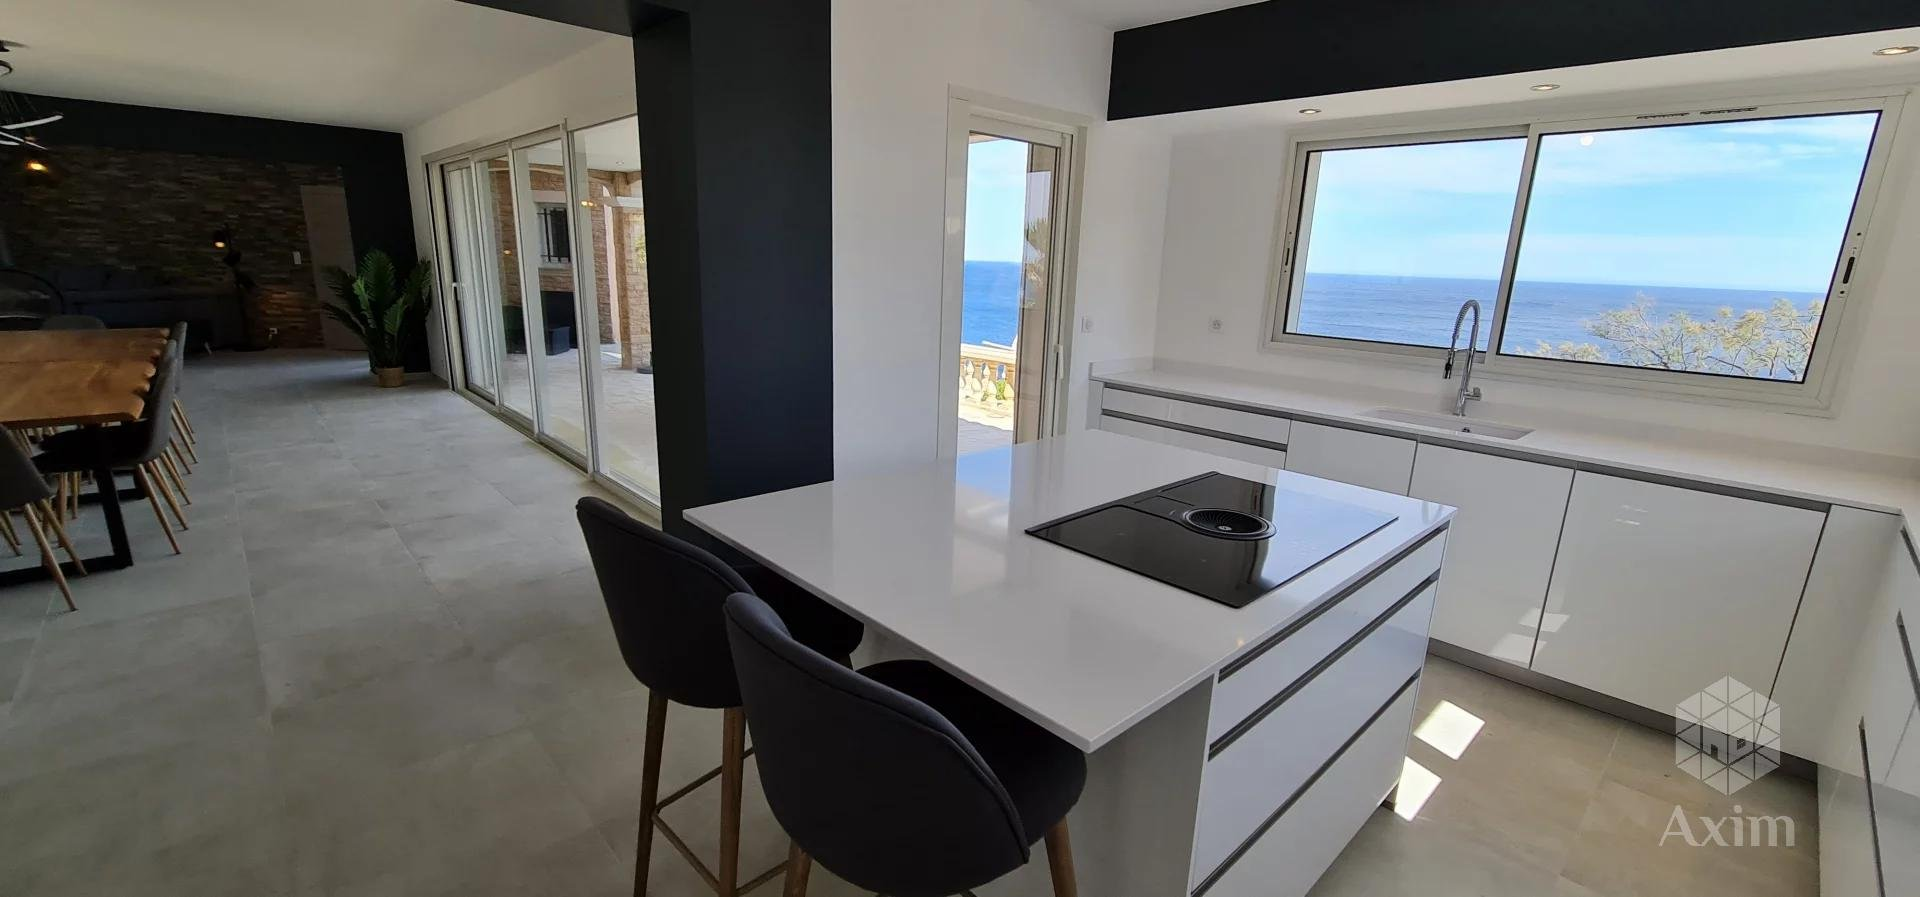 Air-conditioned villa, 12 people, facing the sea, heated swimming pool, beach at 200 m